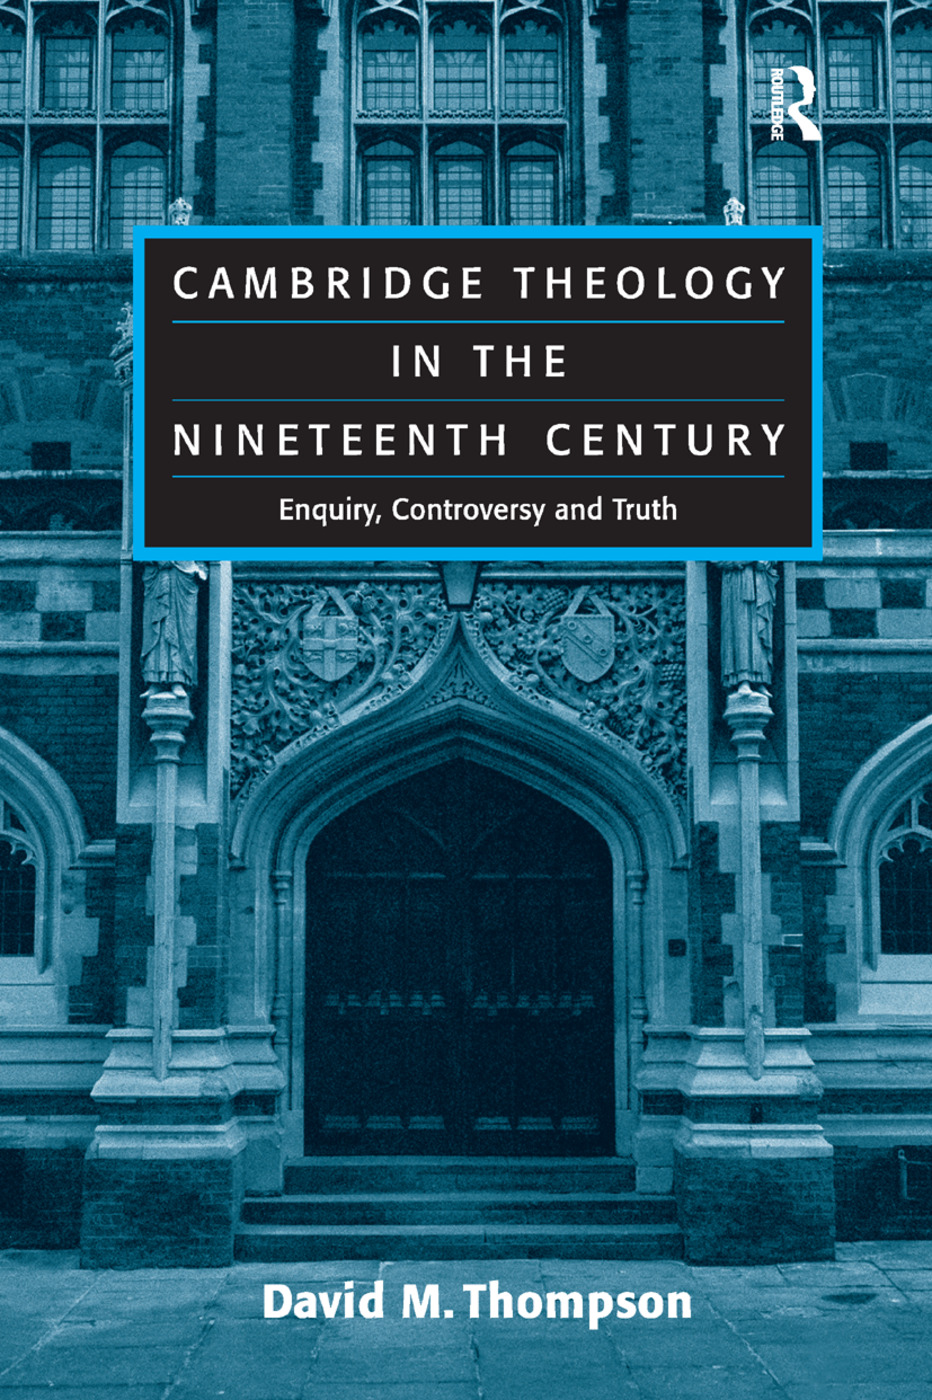 Cambridge Theology in the Nineteenth Century